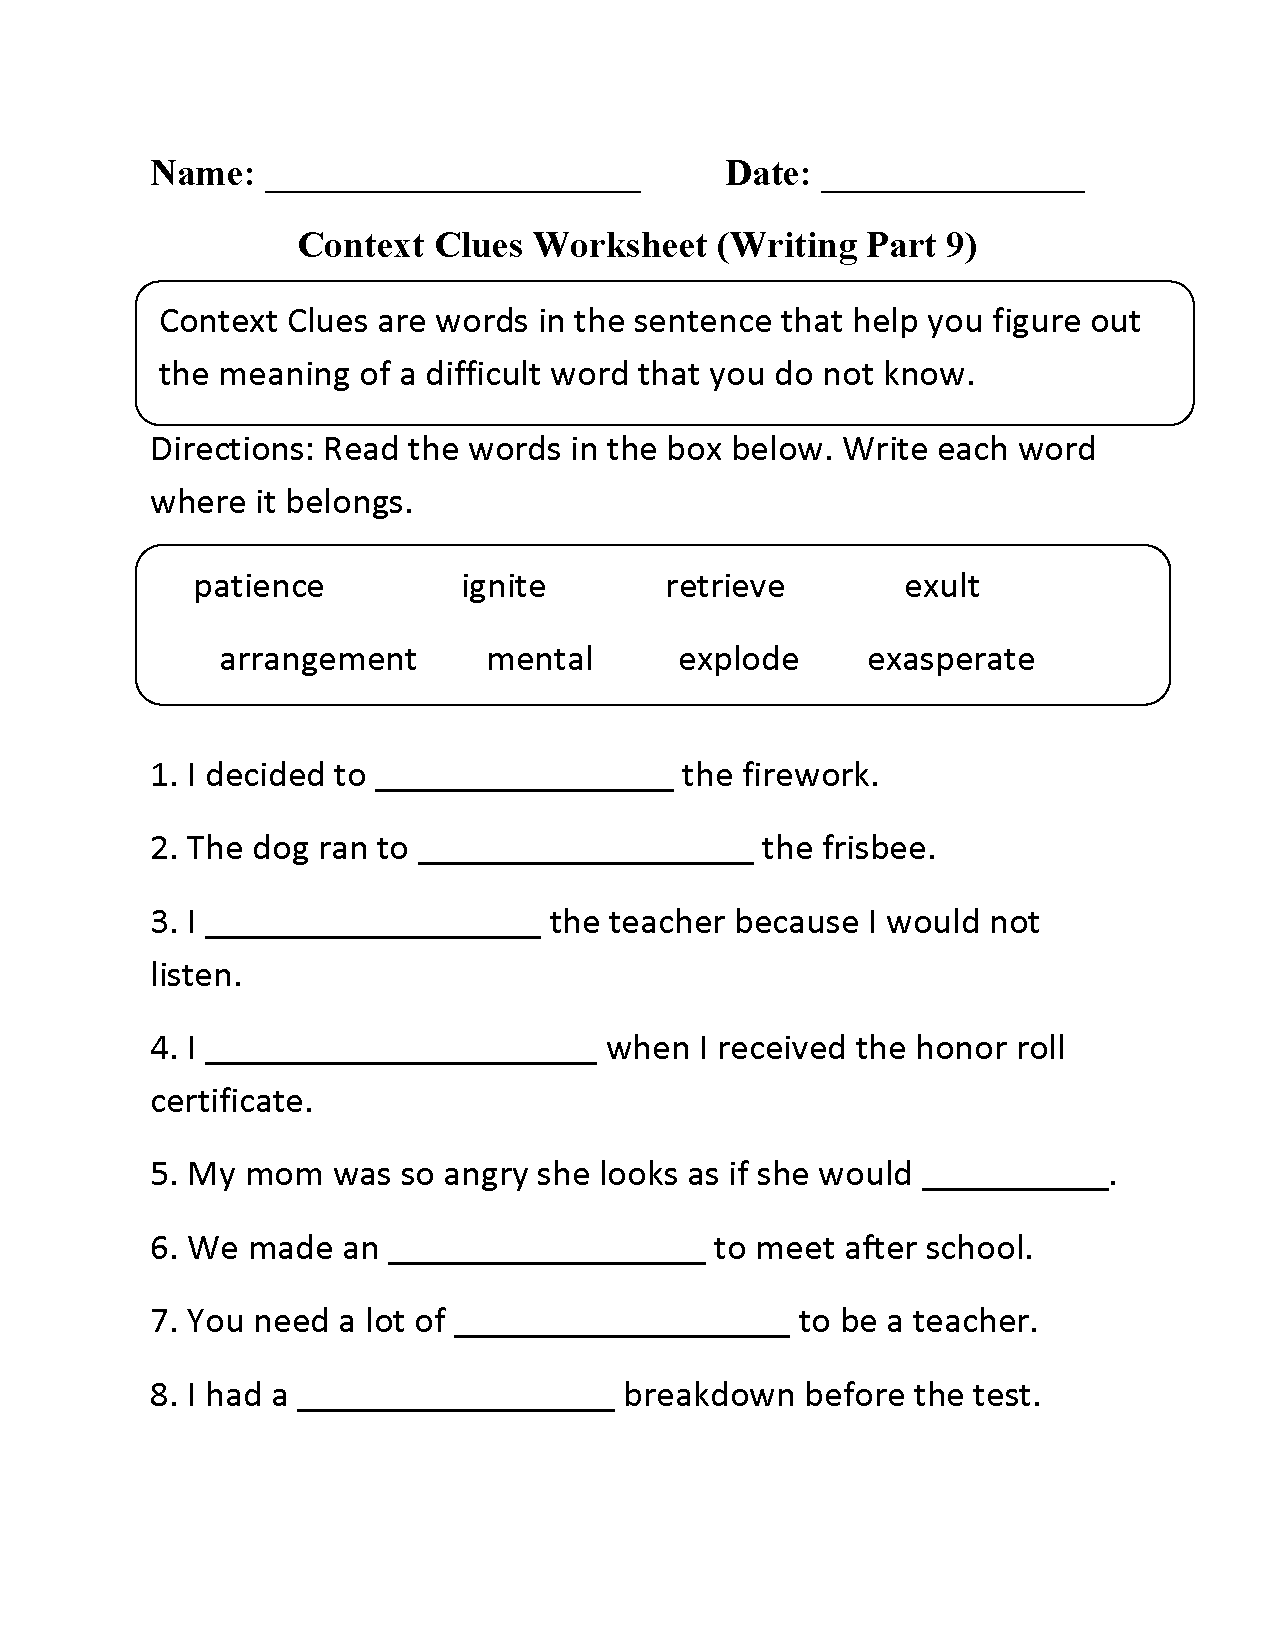 Weirdmailus  Pretty Englishlinxcom  Context Clues Worksheets With Exciting Context Clues Worksheet Writing Part  Intermediate With Divine Esl Comprehension Worksheets Printables Also Cause And Effect Worksheets For High School In Addition Column Addition And Subtraction Worksheets Ks And Sh Phonics Worksheet As Well As Free Square Root Worksheets Additionally Free Synonyms And Antonyms Worksheets From Englishlinxcom With Weirdmailus  Exciting Englishlinxcom  Context Clues Worksheets With Divine Context Clues Worksheet Writing Part  Intermediate And Pretty Esl Comprehension Worksheets Printables Also Cause And Effect Worksheets For High School In Addition Column Addition And Subtraction Worksheets Ks From Englishlinxcom